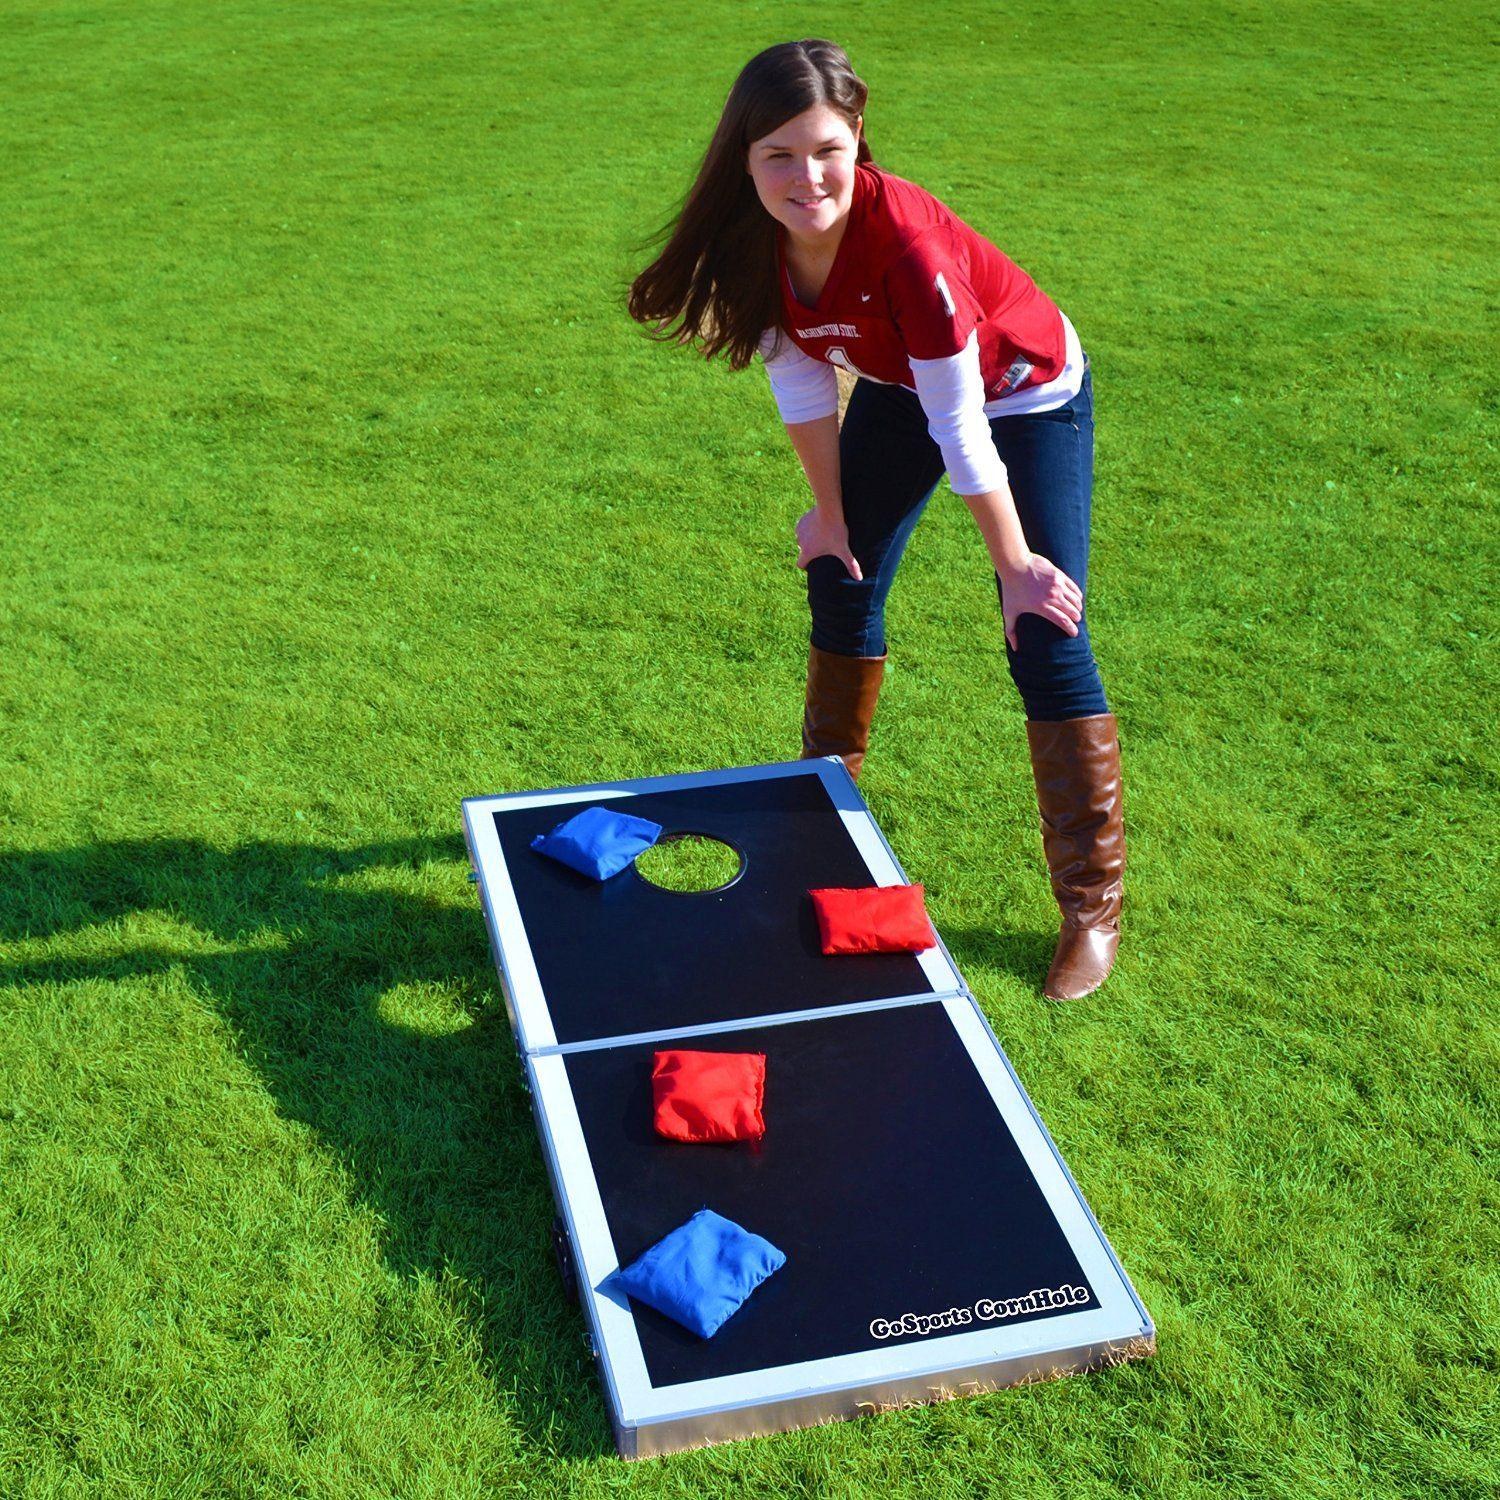 Portable Cornhole Game For Easy Storage And Transport For Summer Trips And  Backyard Fun.